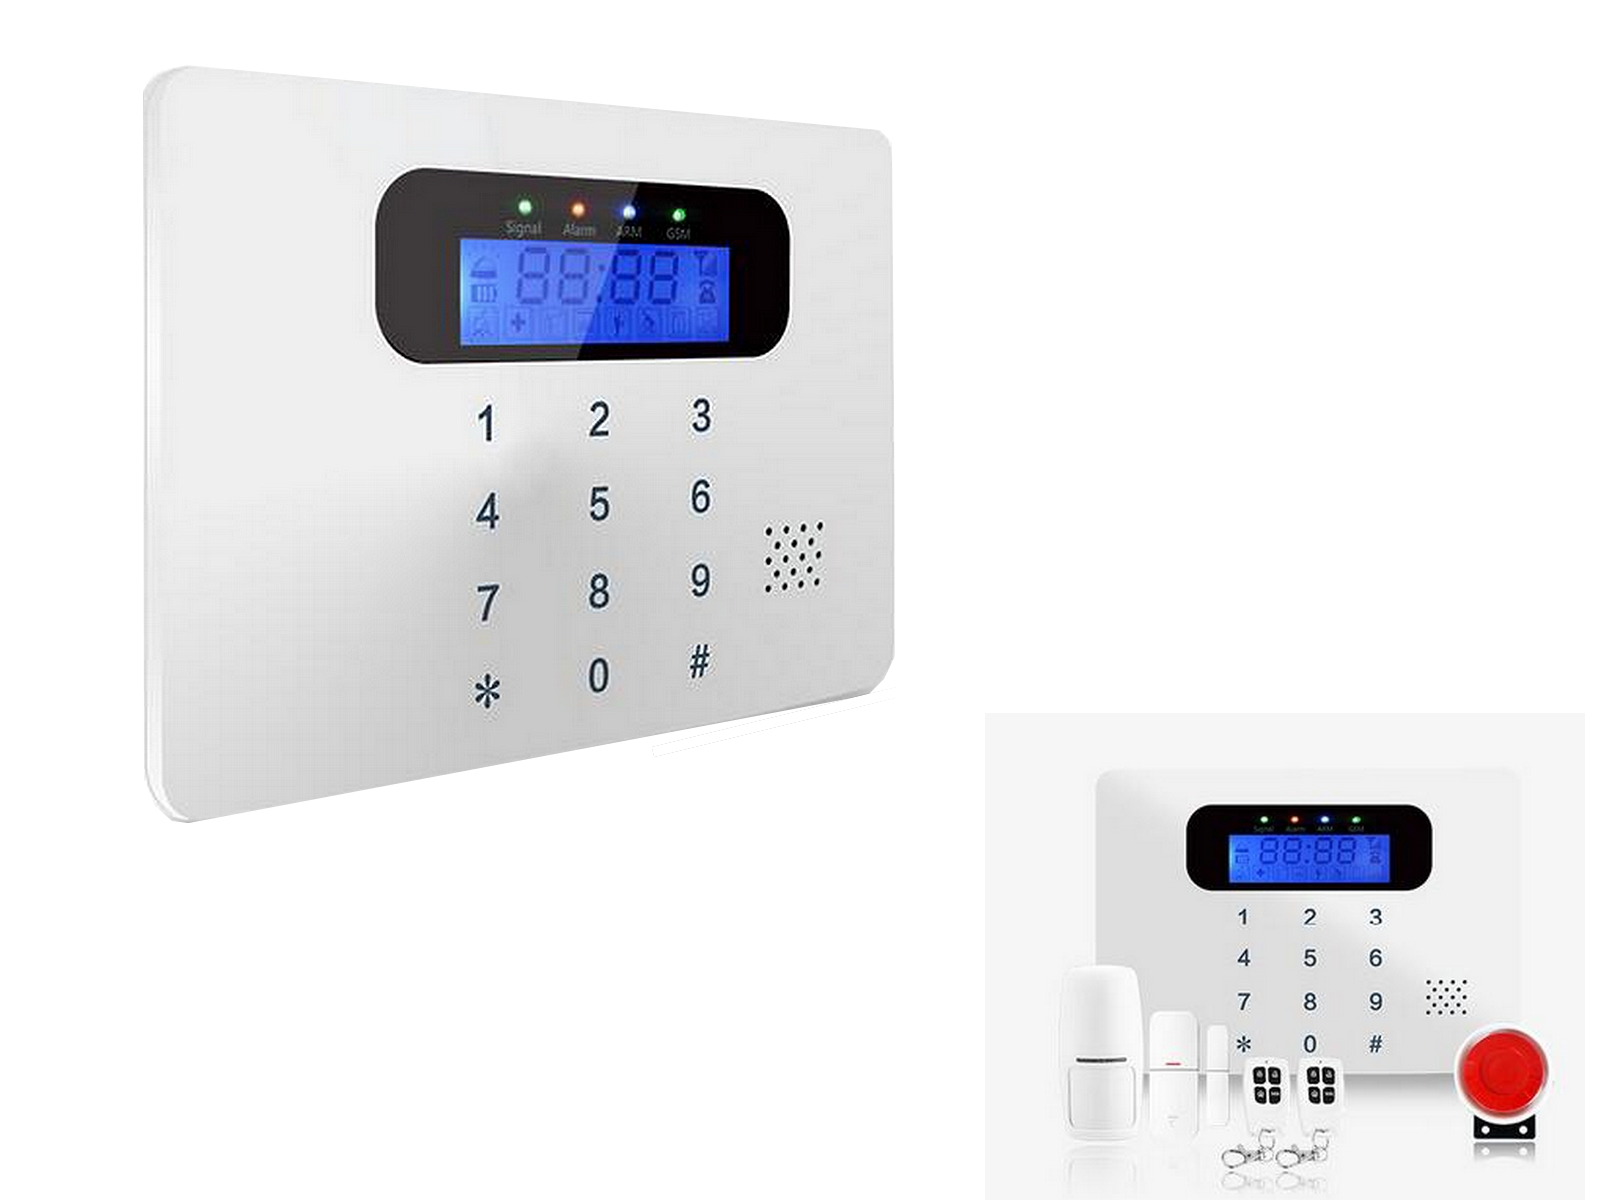 ANTIFURTO WIRELESS G-030C, ALLARME INTERFONO SMS APP INTRUSIONE GAS EMERGENZA